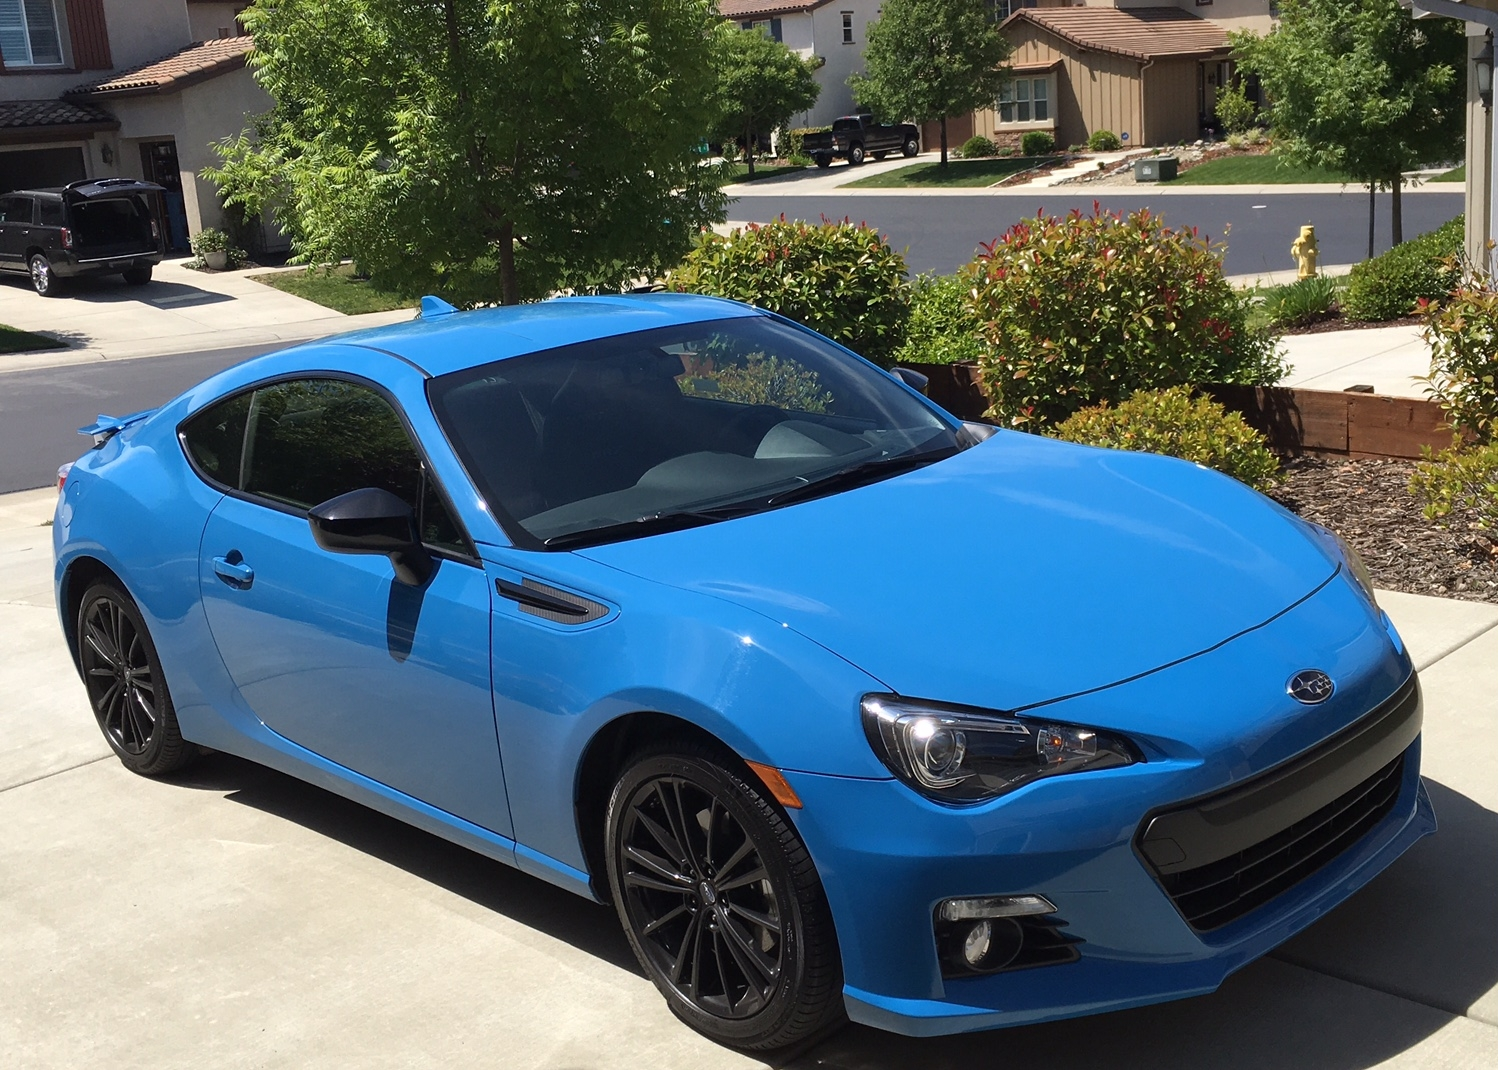 subaru brz: reasonably priced, old-school sports car - tahoe ski world